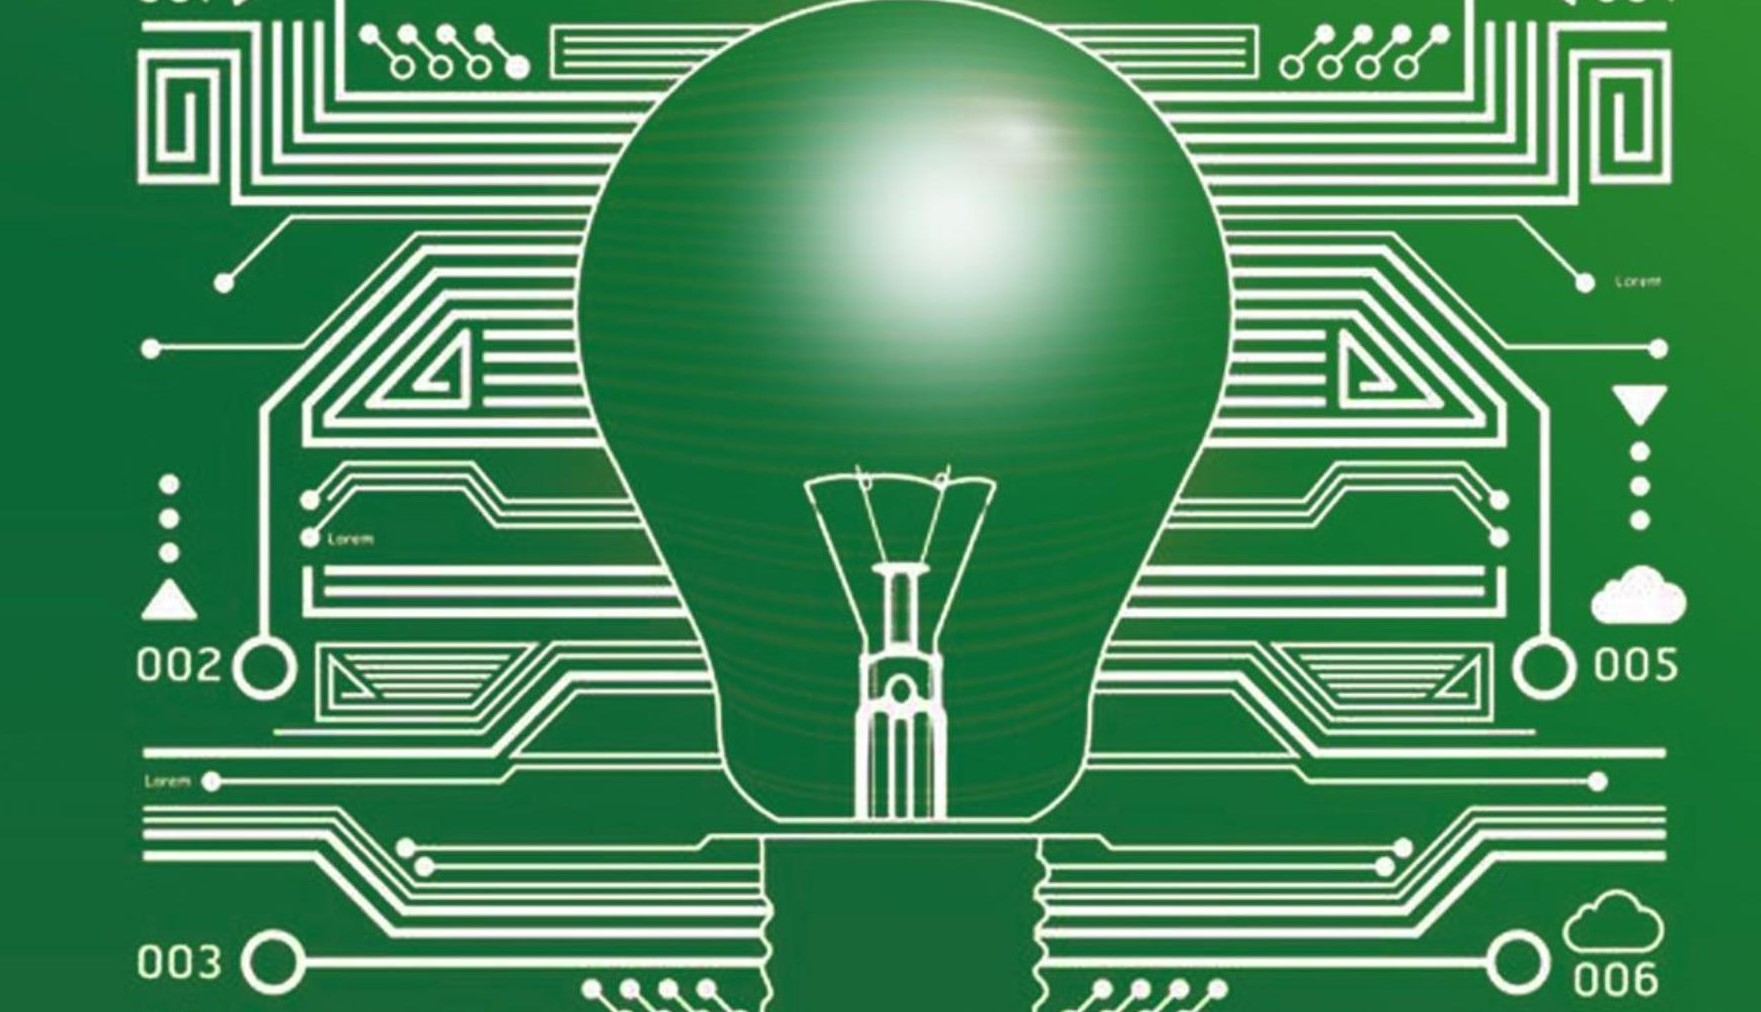 Image of a light bulb on a PCB